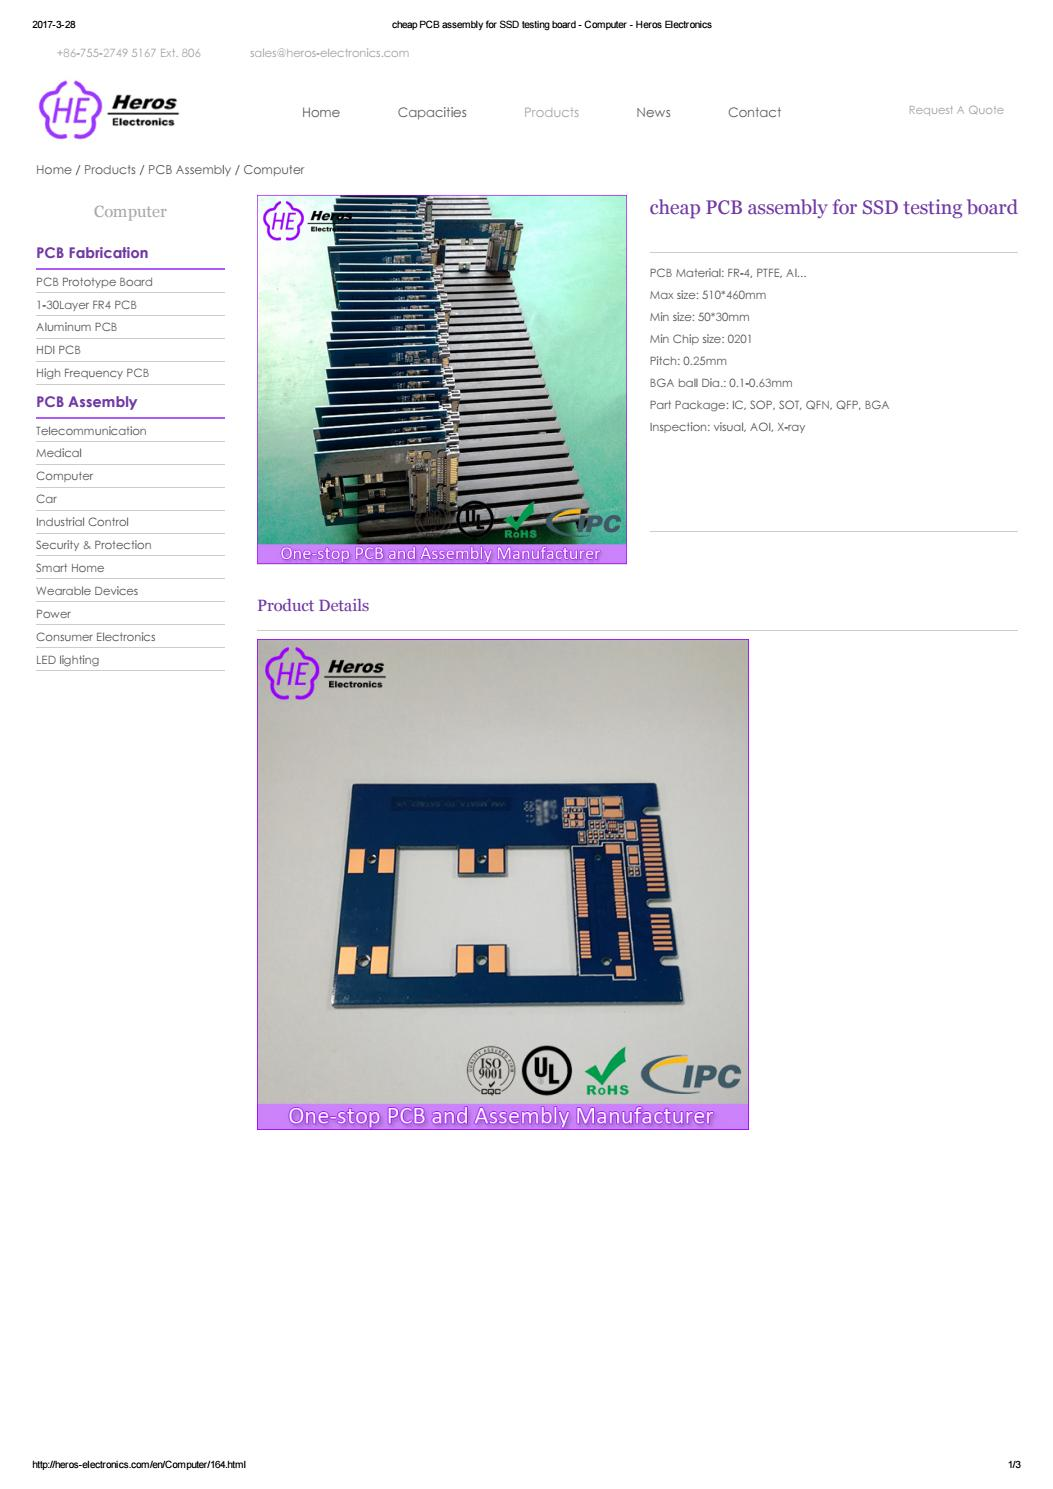 Cheap Pcb Assembly For Ssd Testing Board Computer Heros Electronics High Quality Hdi Circuit Made In China Sale By Shenzhen Co Ltd Issuu